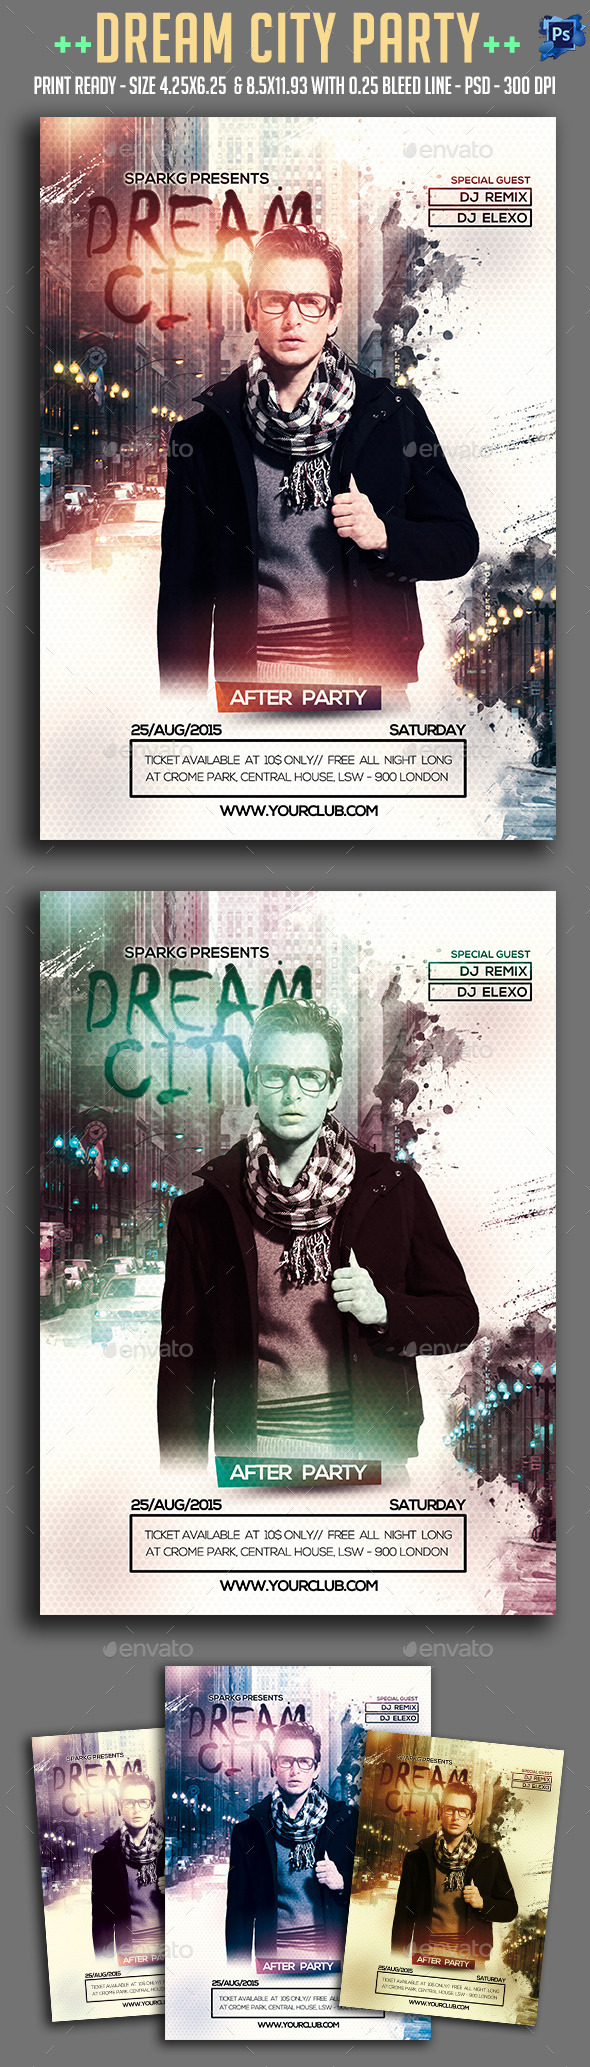 Dream City Party Flyer - Clubs & Parties Events